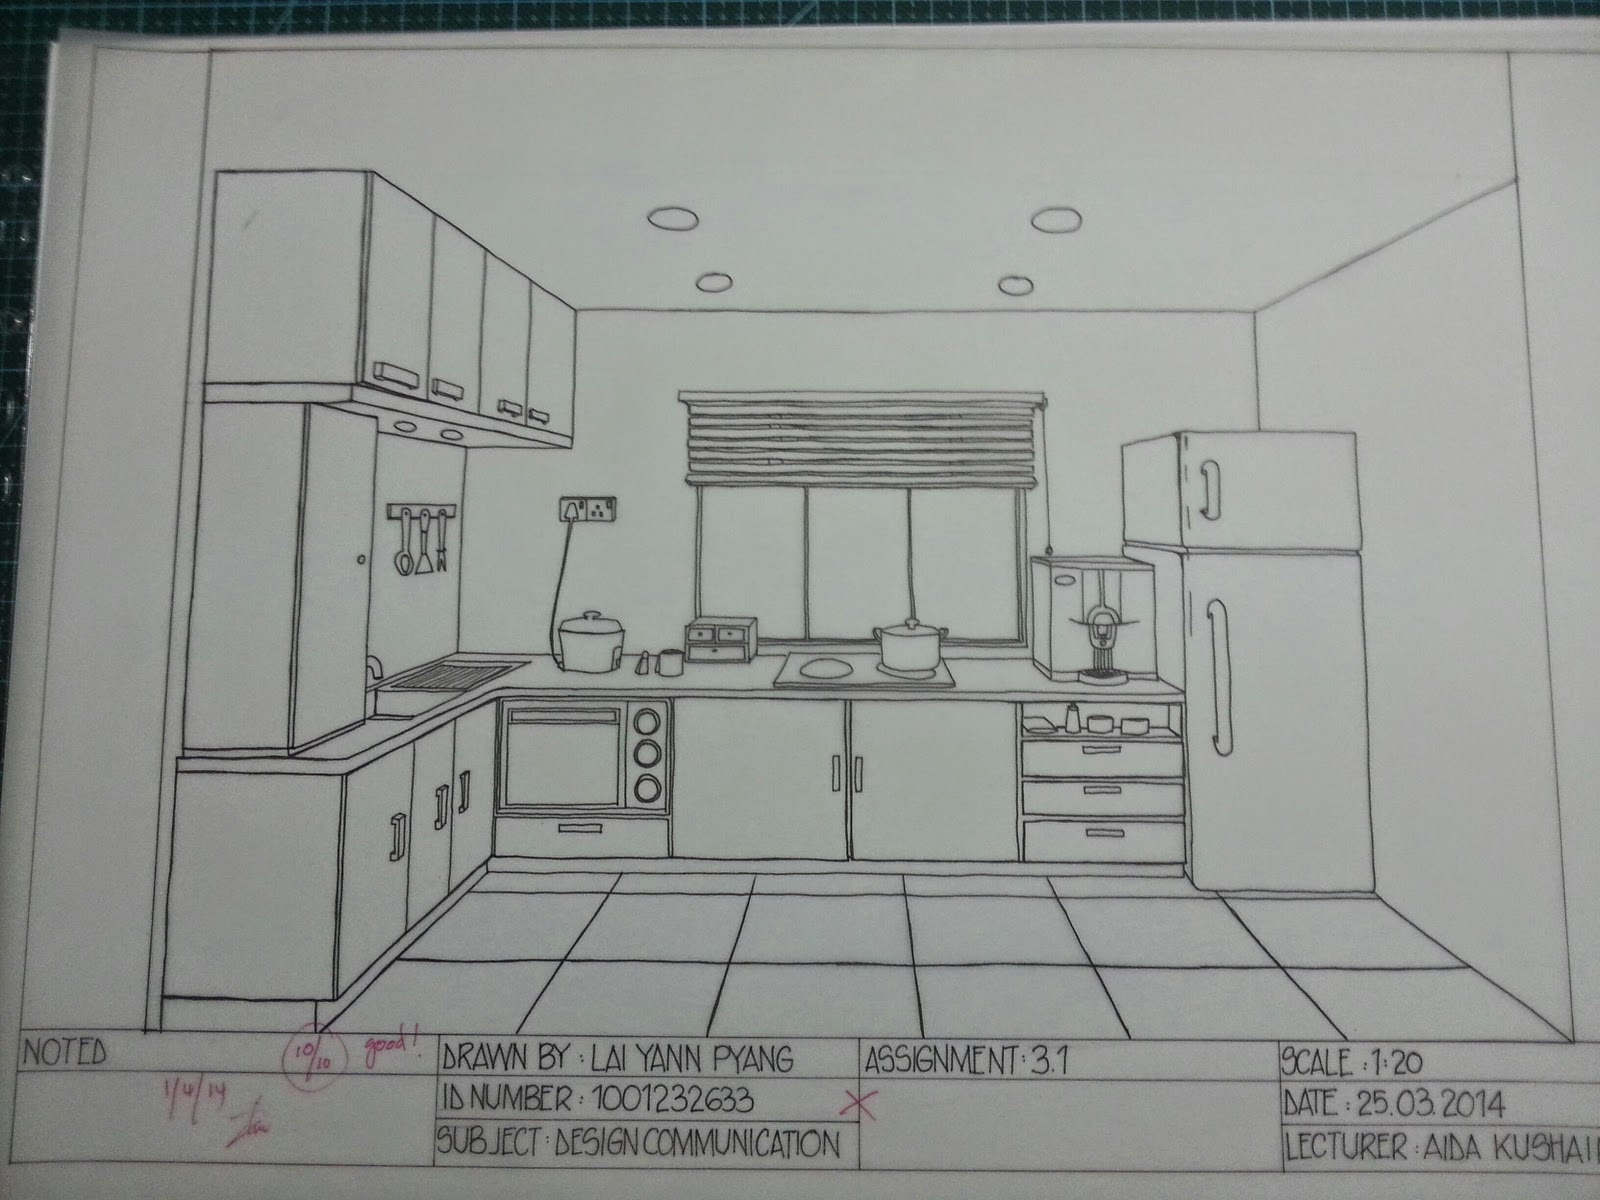 Kitchen perspective drawing - The Boring Mona